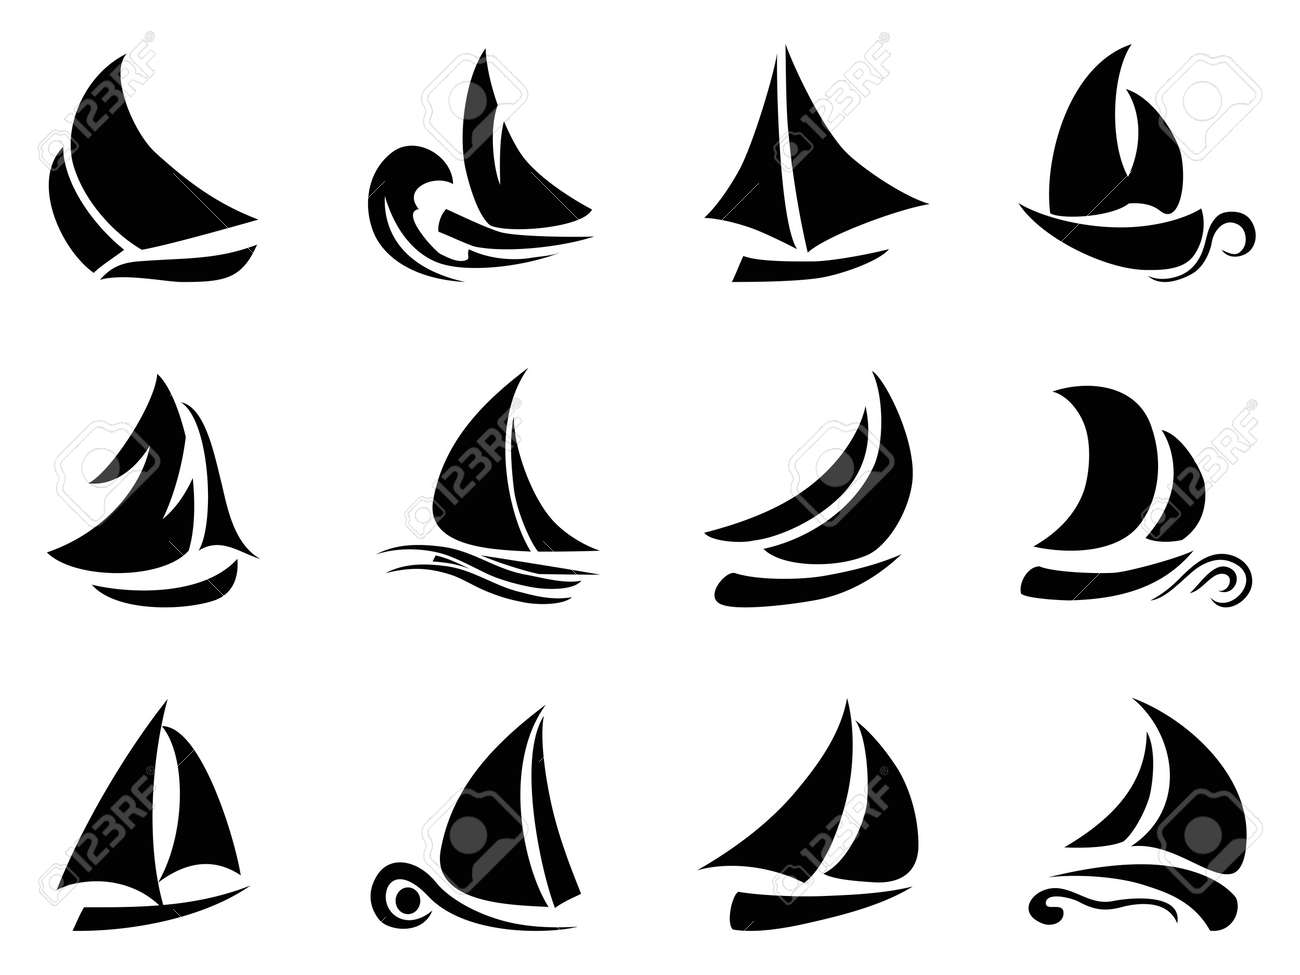 Nautical Clipart Black And White sail boat the design of black